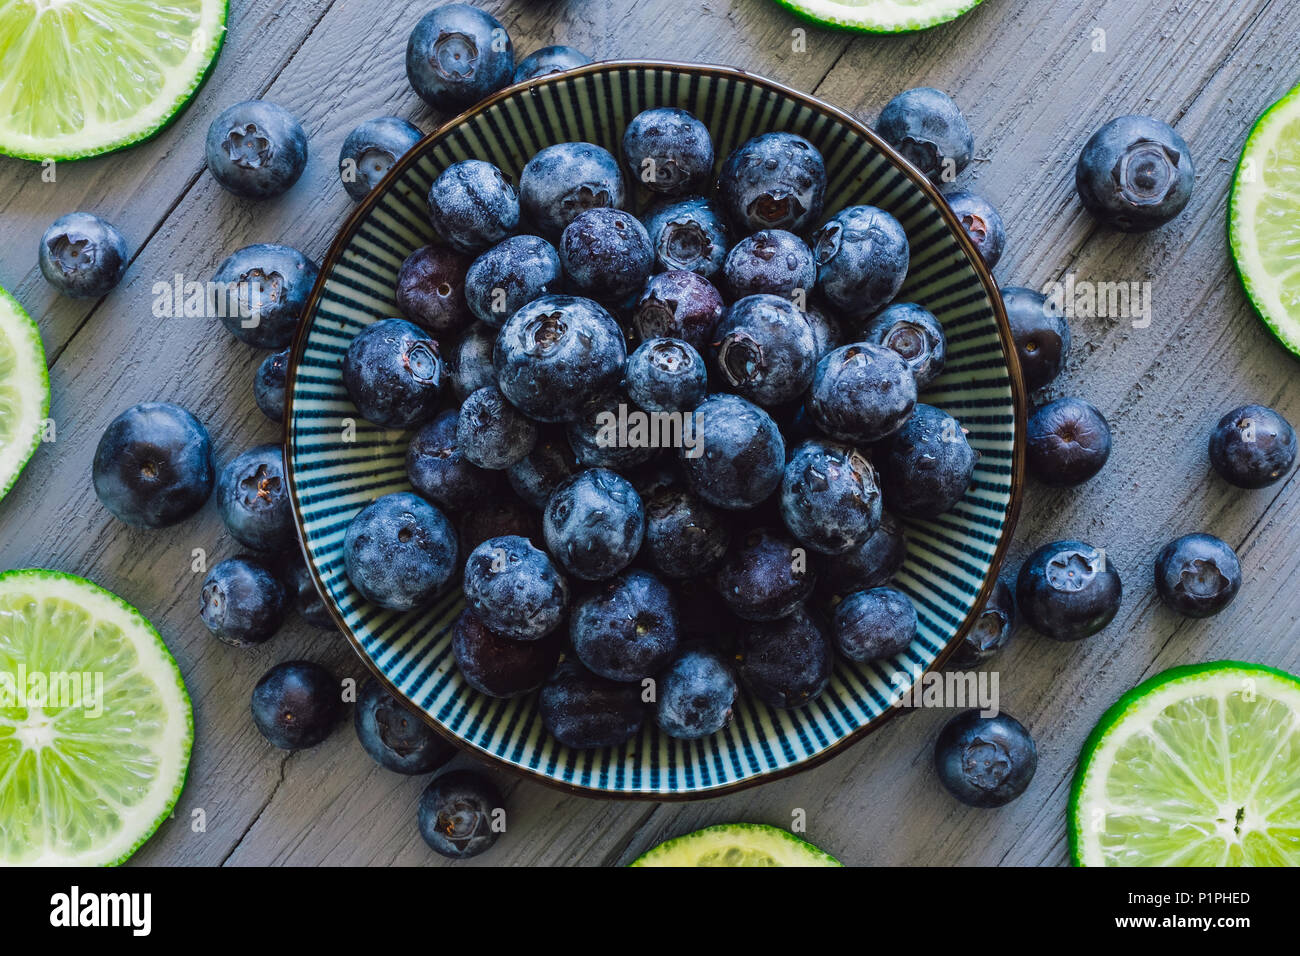 Centered Bowl of Blueberries with Scattered Berries and Sliced Limes on Blue Table - Stock Image